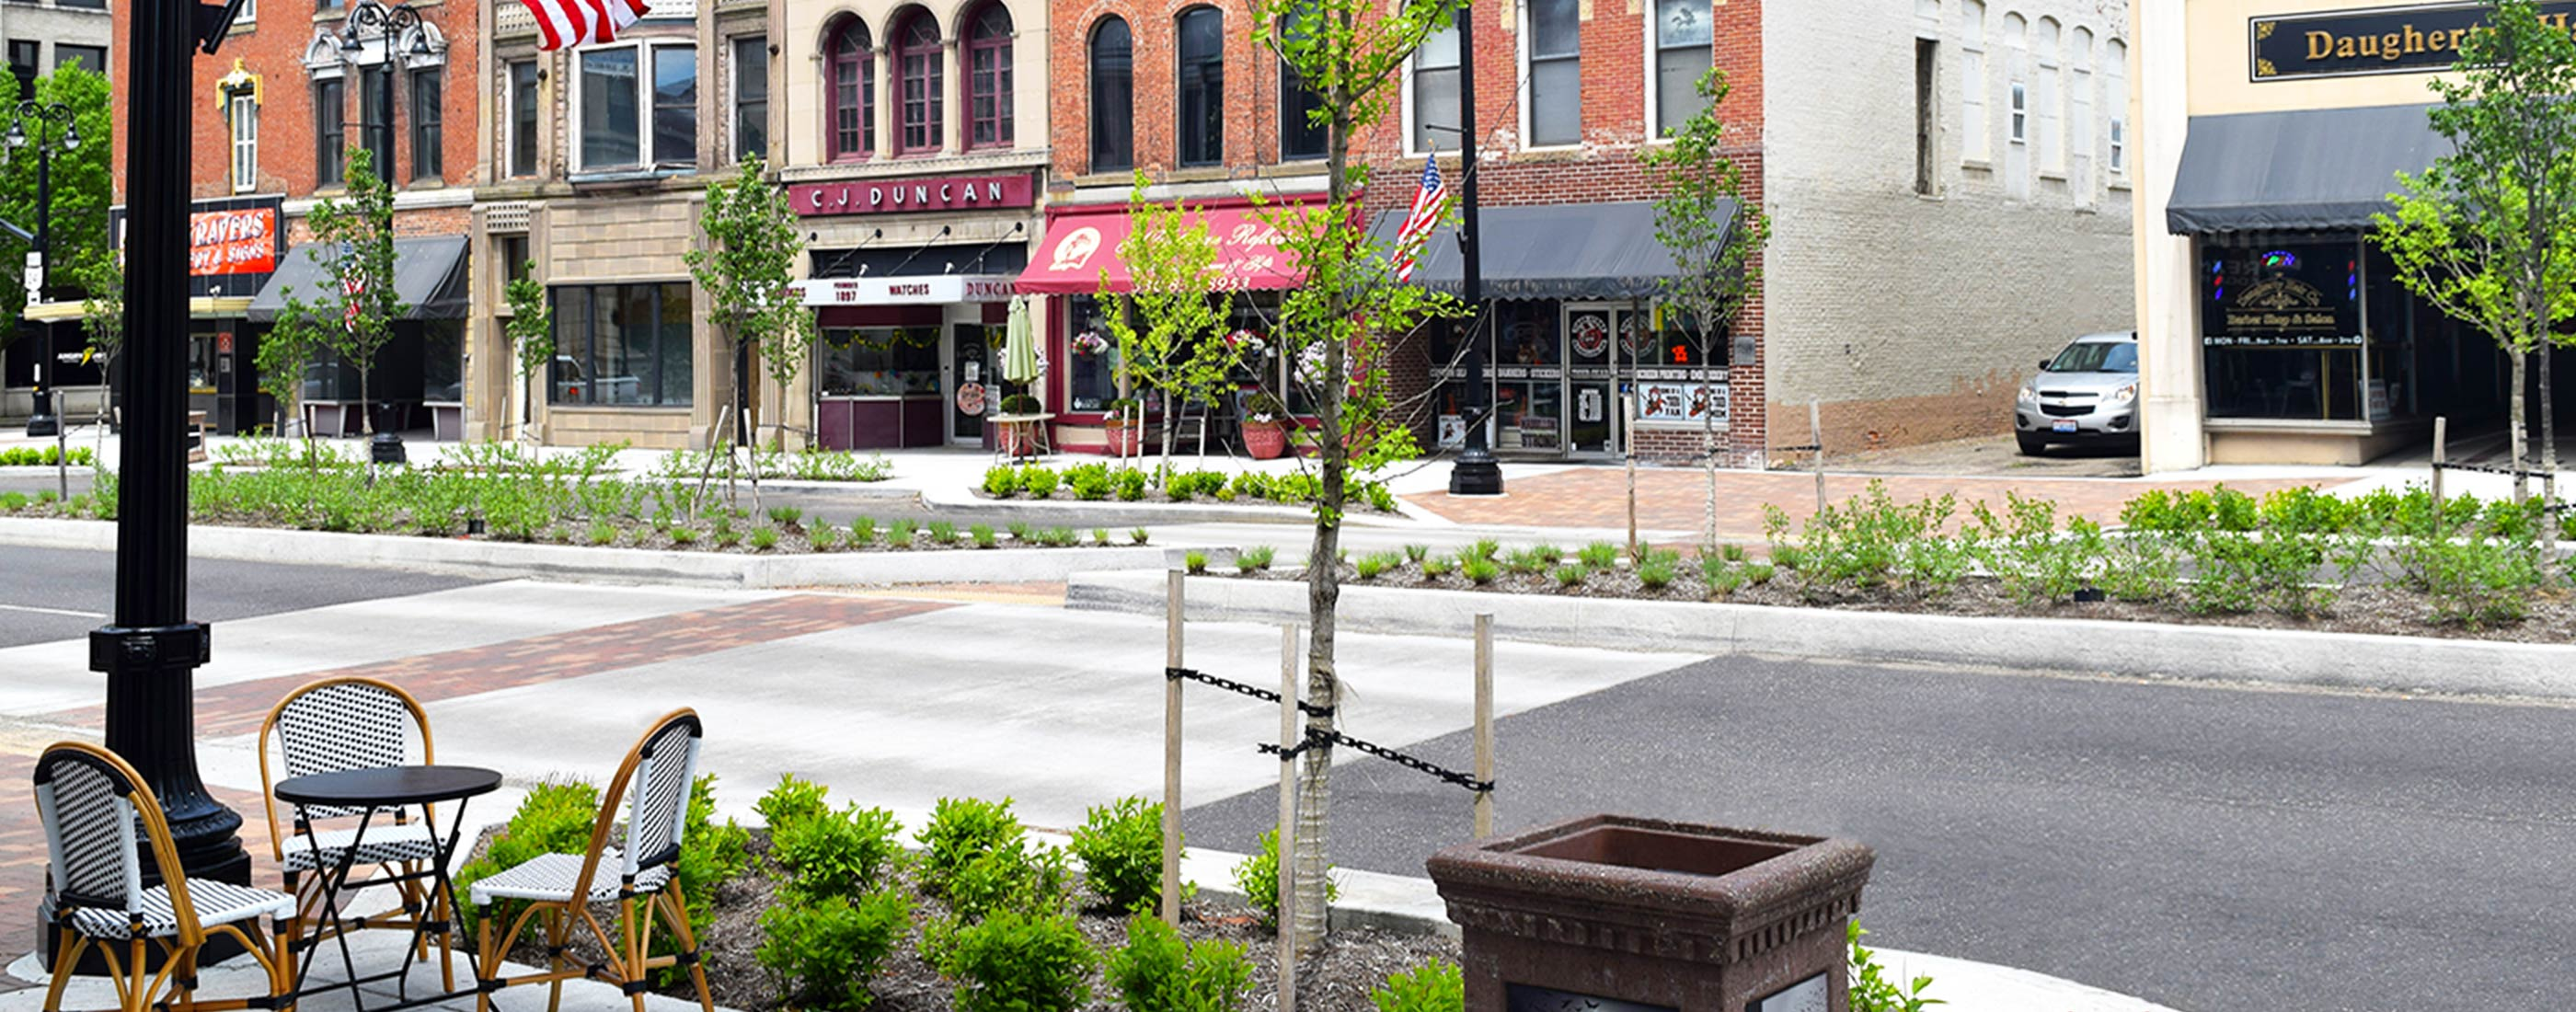 Pedestrian crossing 2 in Massillon streetscape